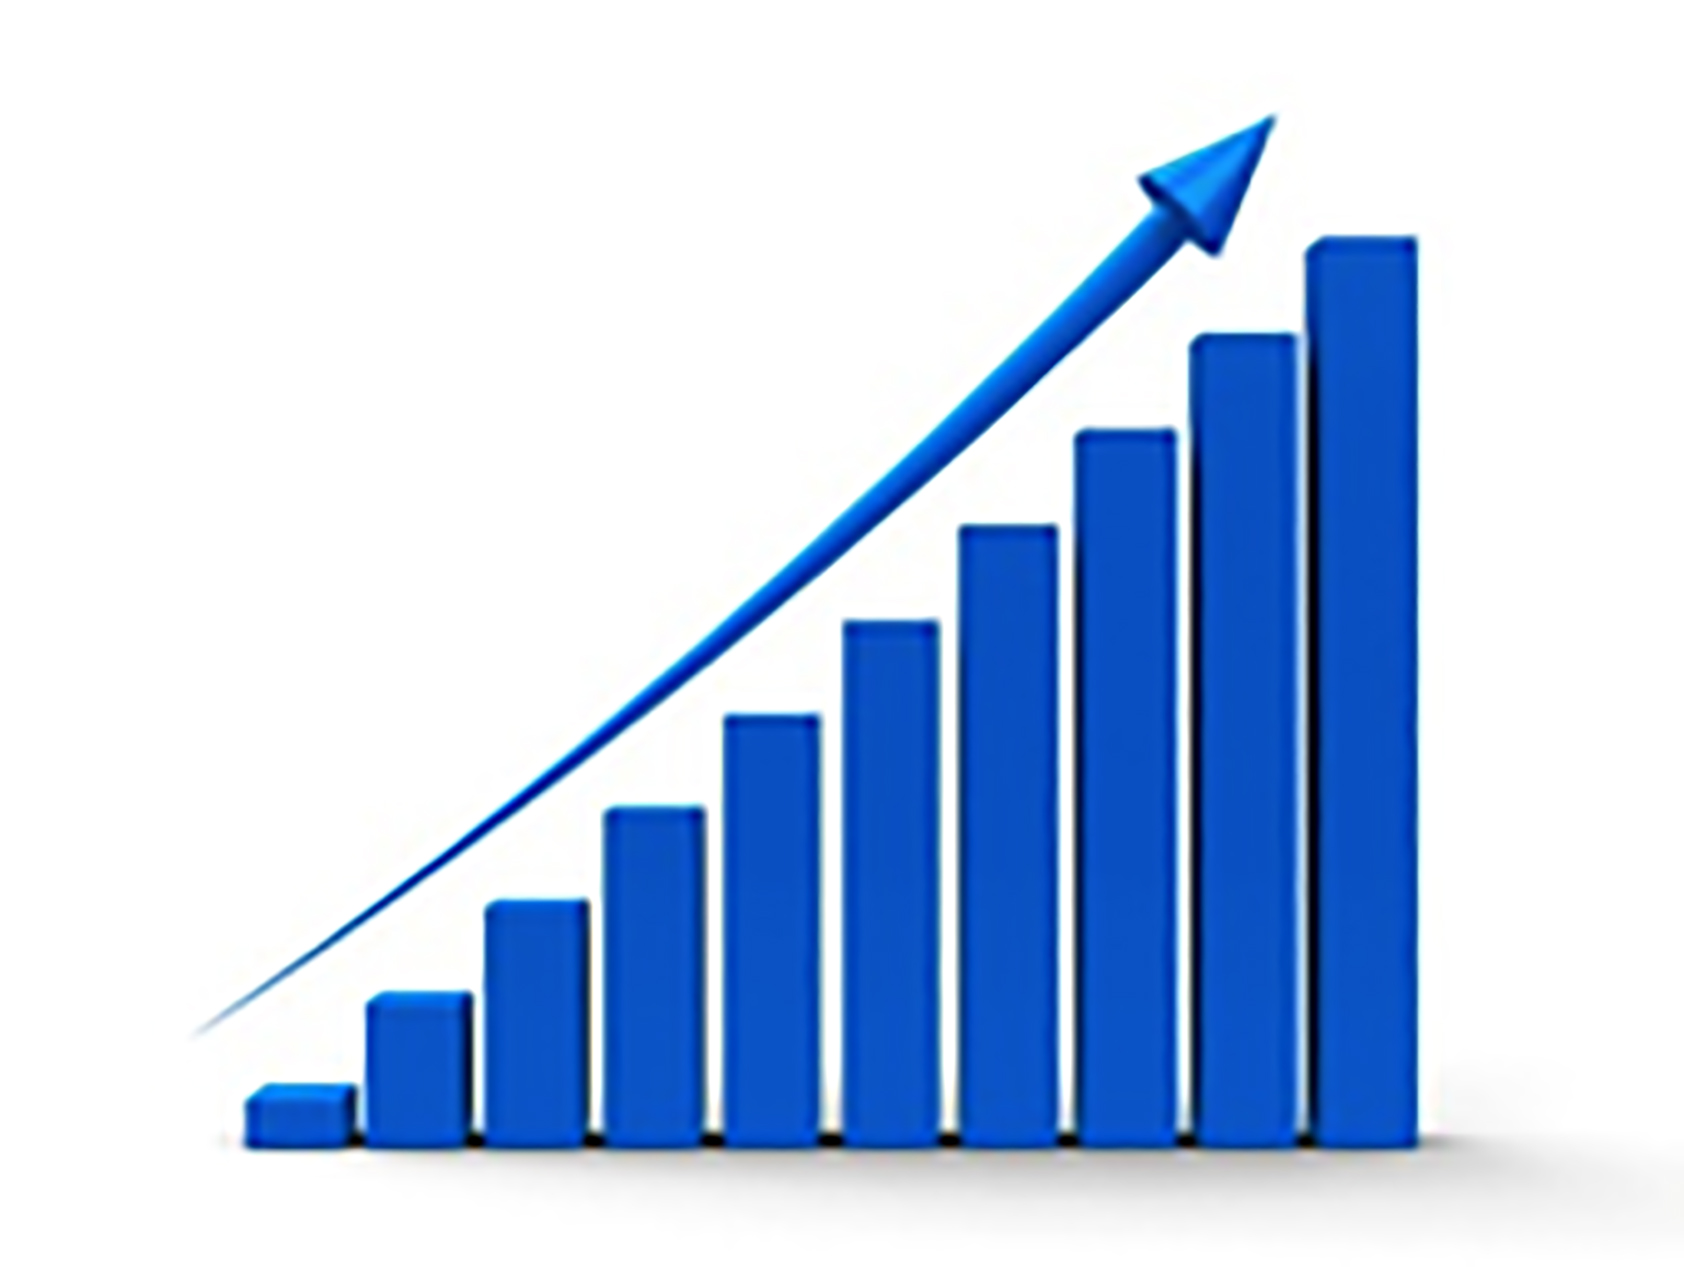 bar graph with arrow to show increased sales and revenue from ads